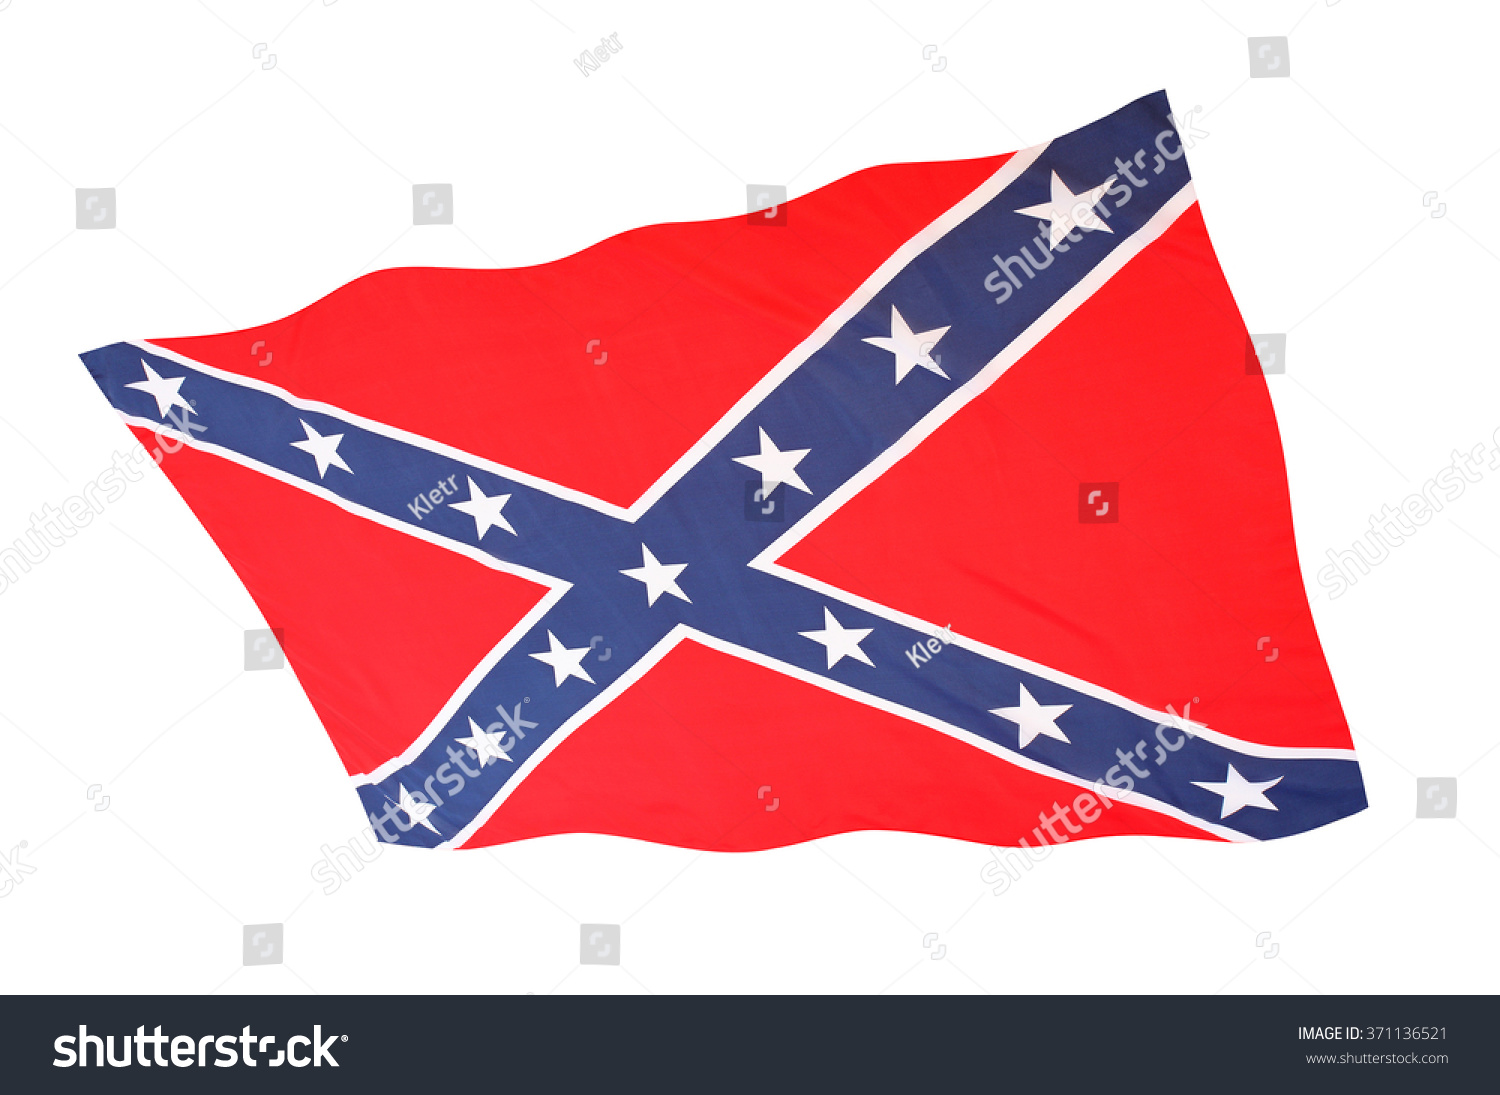 Confederate battle flag st andrews cross stock illustration confederate battle flag with st andrews cross waving on white background symbol of todays rebels biocorpaavc